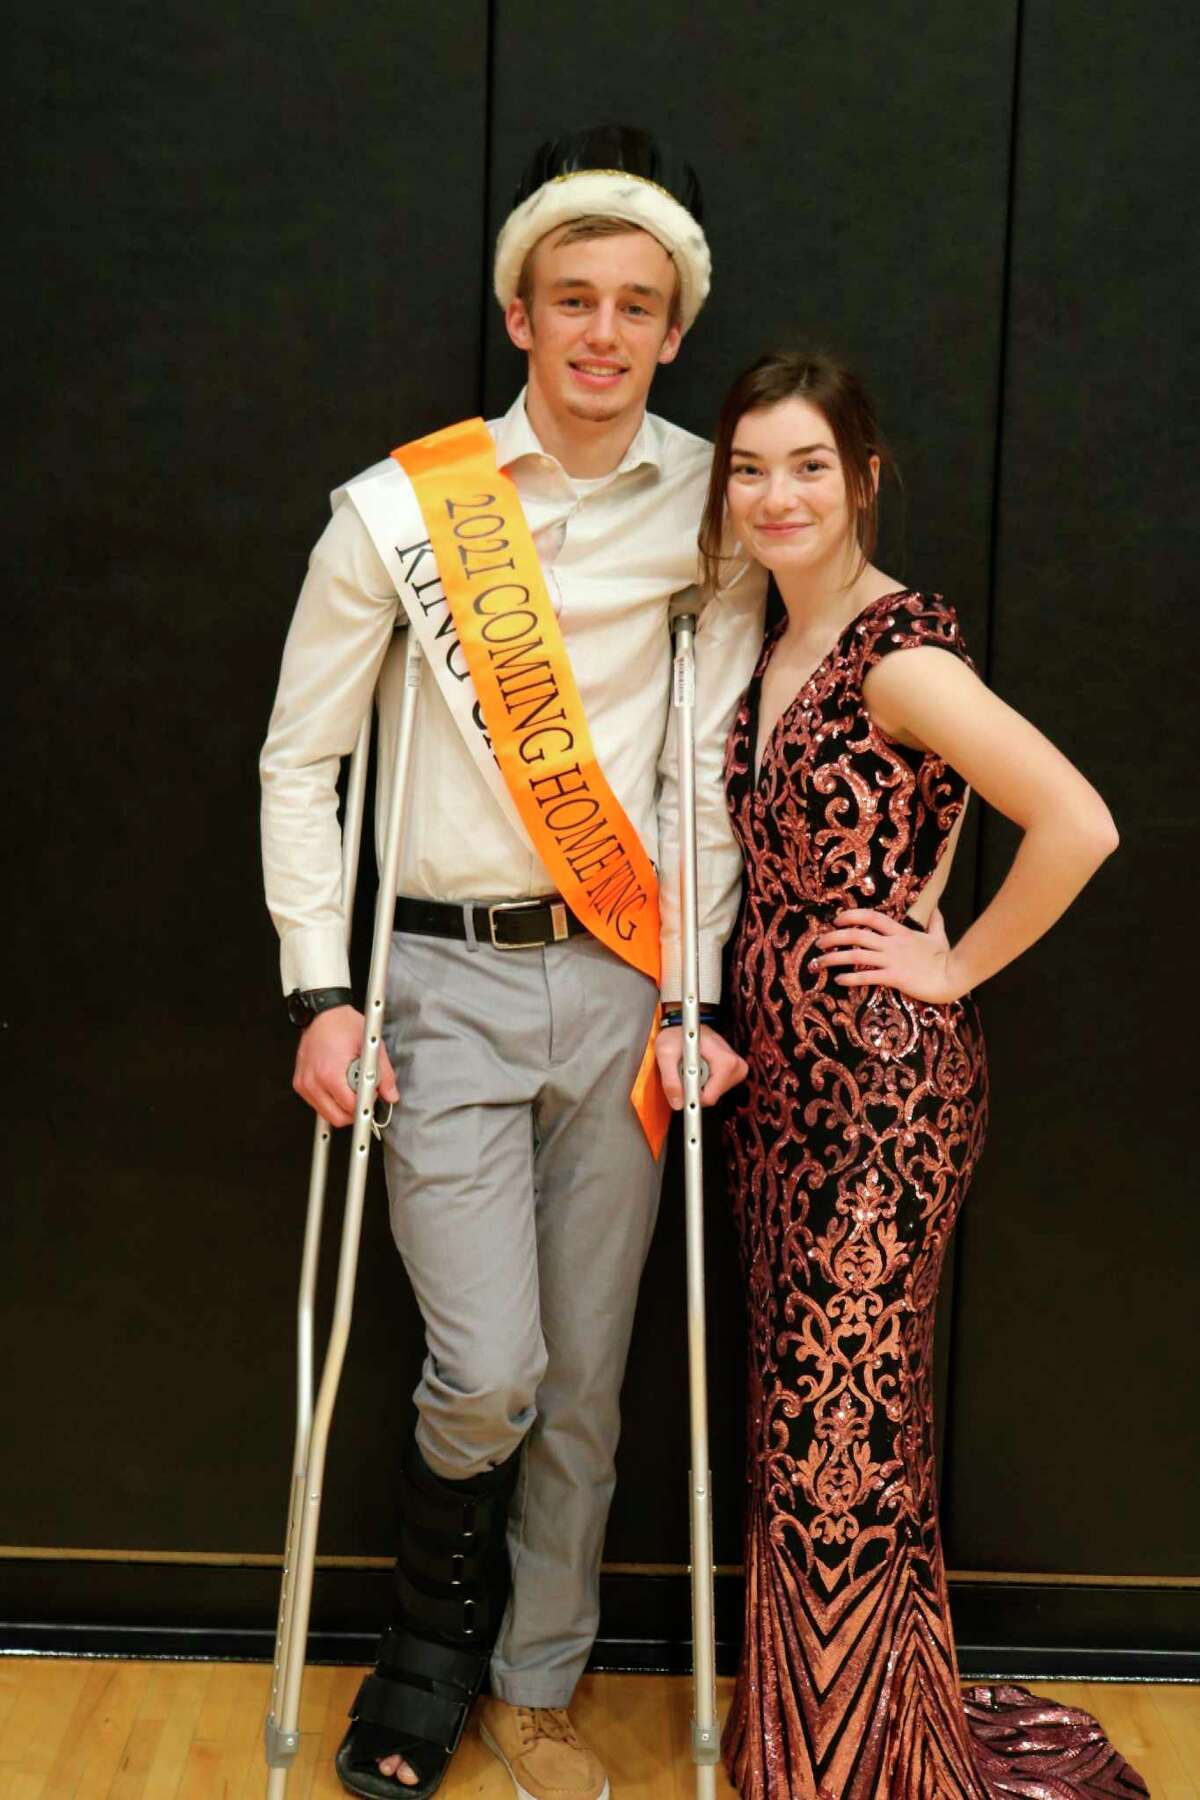 Pictured is Harbor Beach 2021 Cominghome King Dylan Kadar. He is being escorted by Makara Kramer. (Submitted Photo)